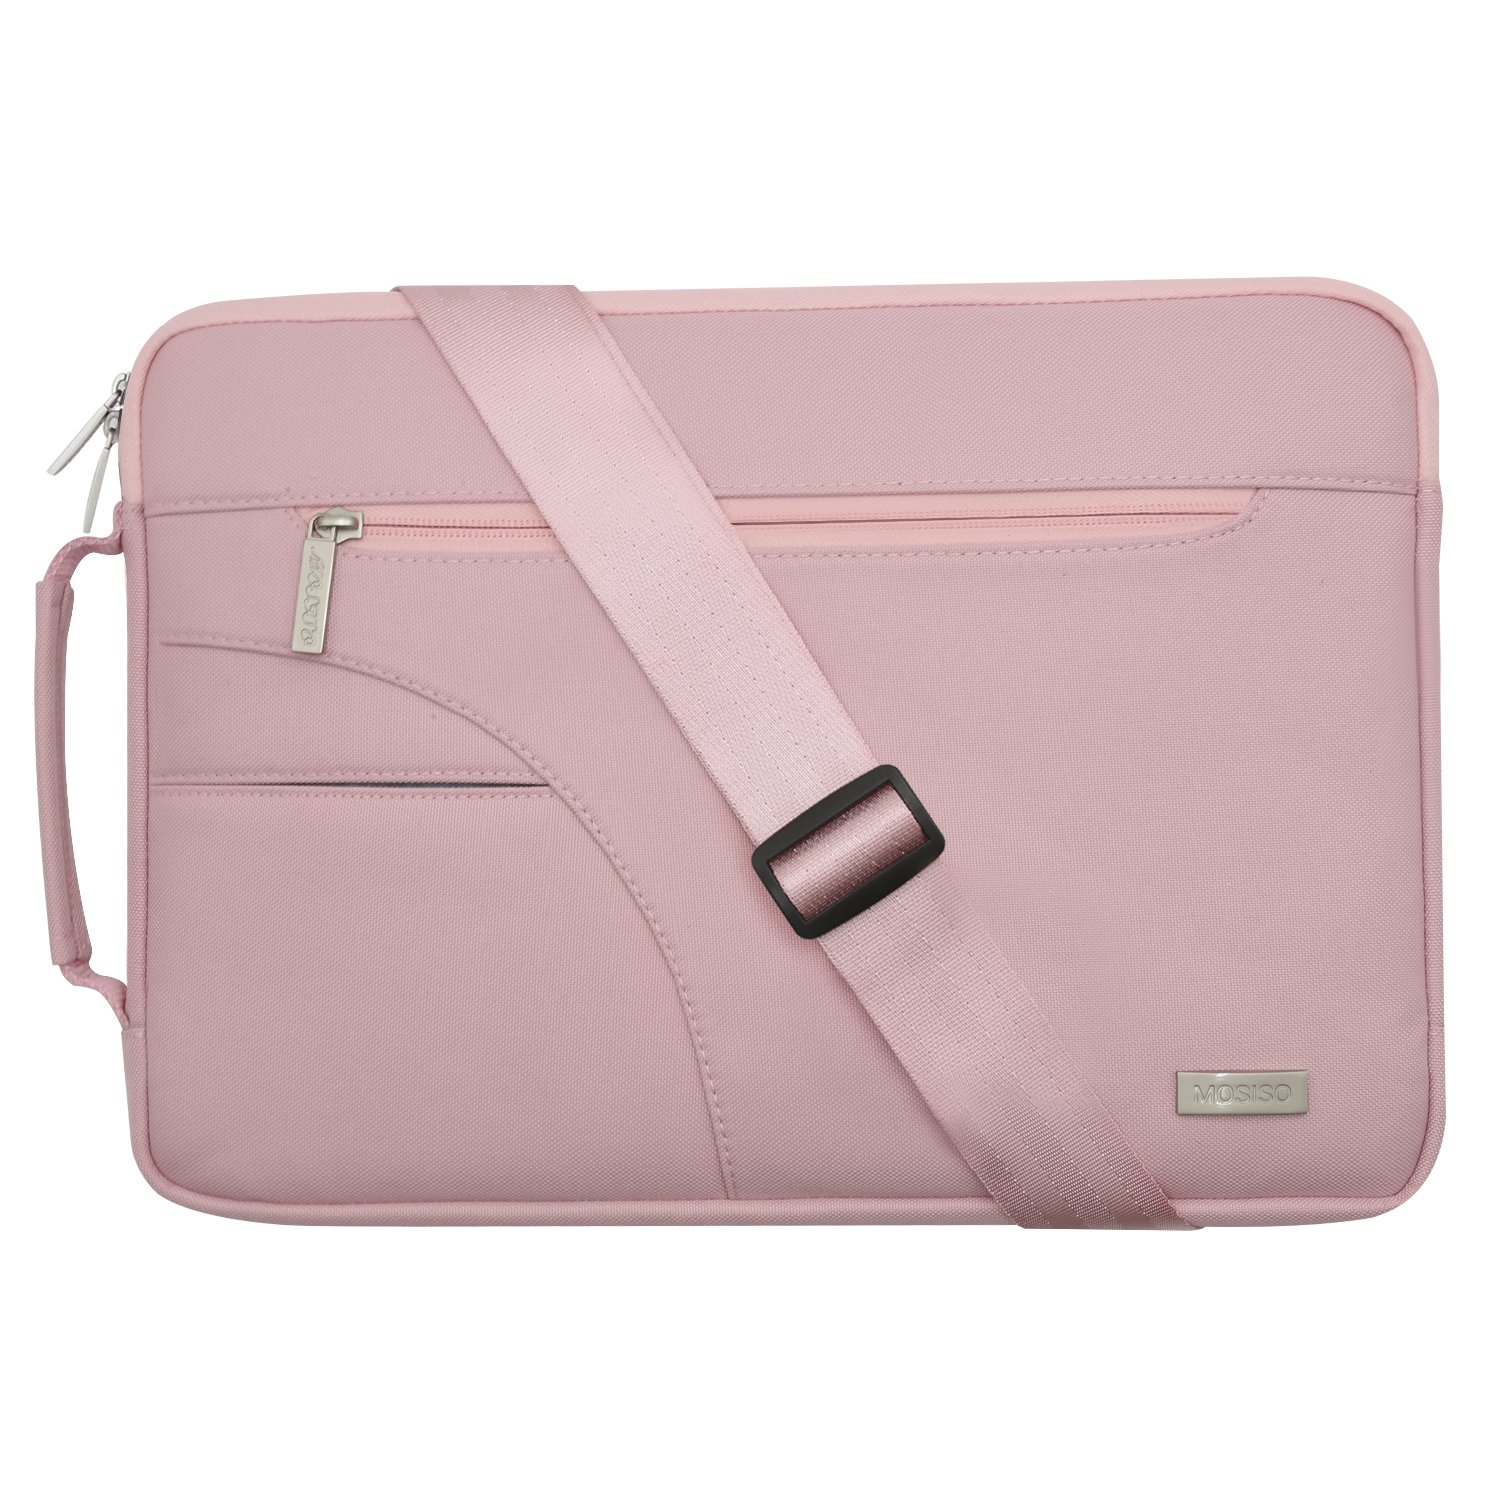 MOSISO Laptop Shoulder Bag Compatible 15-15.6 Inch MacBook Pro, Ultrabook Netbook Tablet, Polyester Ultraportable Protective Briefcase Carrying Handbag Sleeve Case Cover, Pink